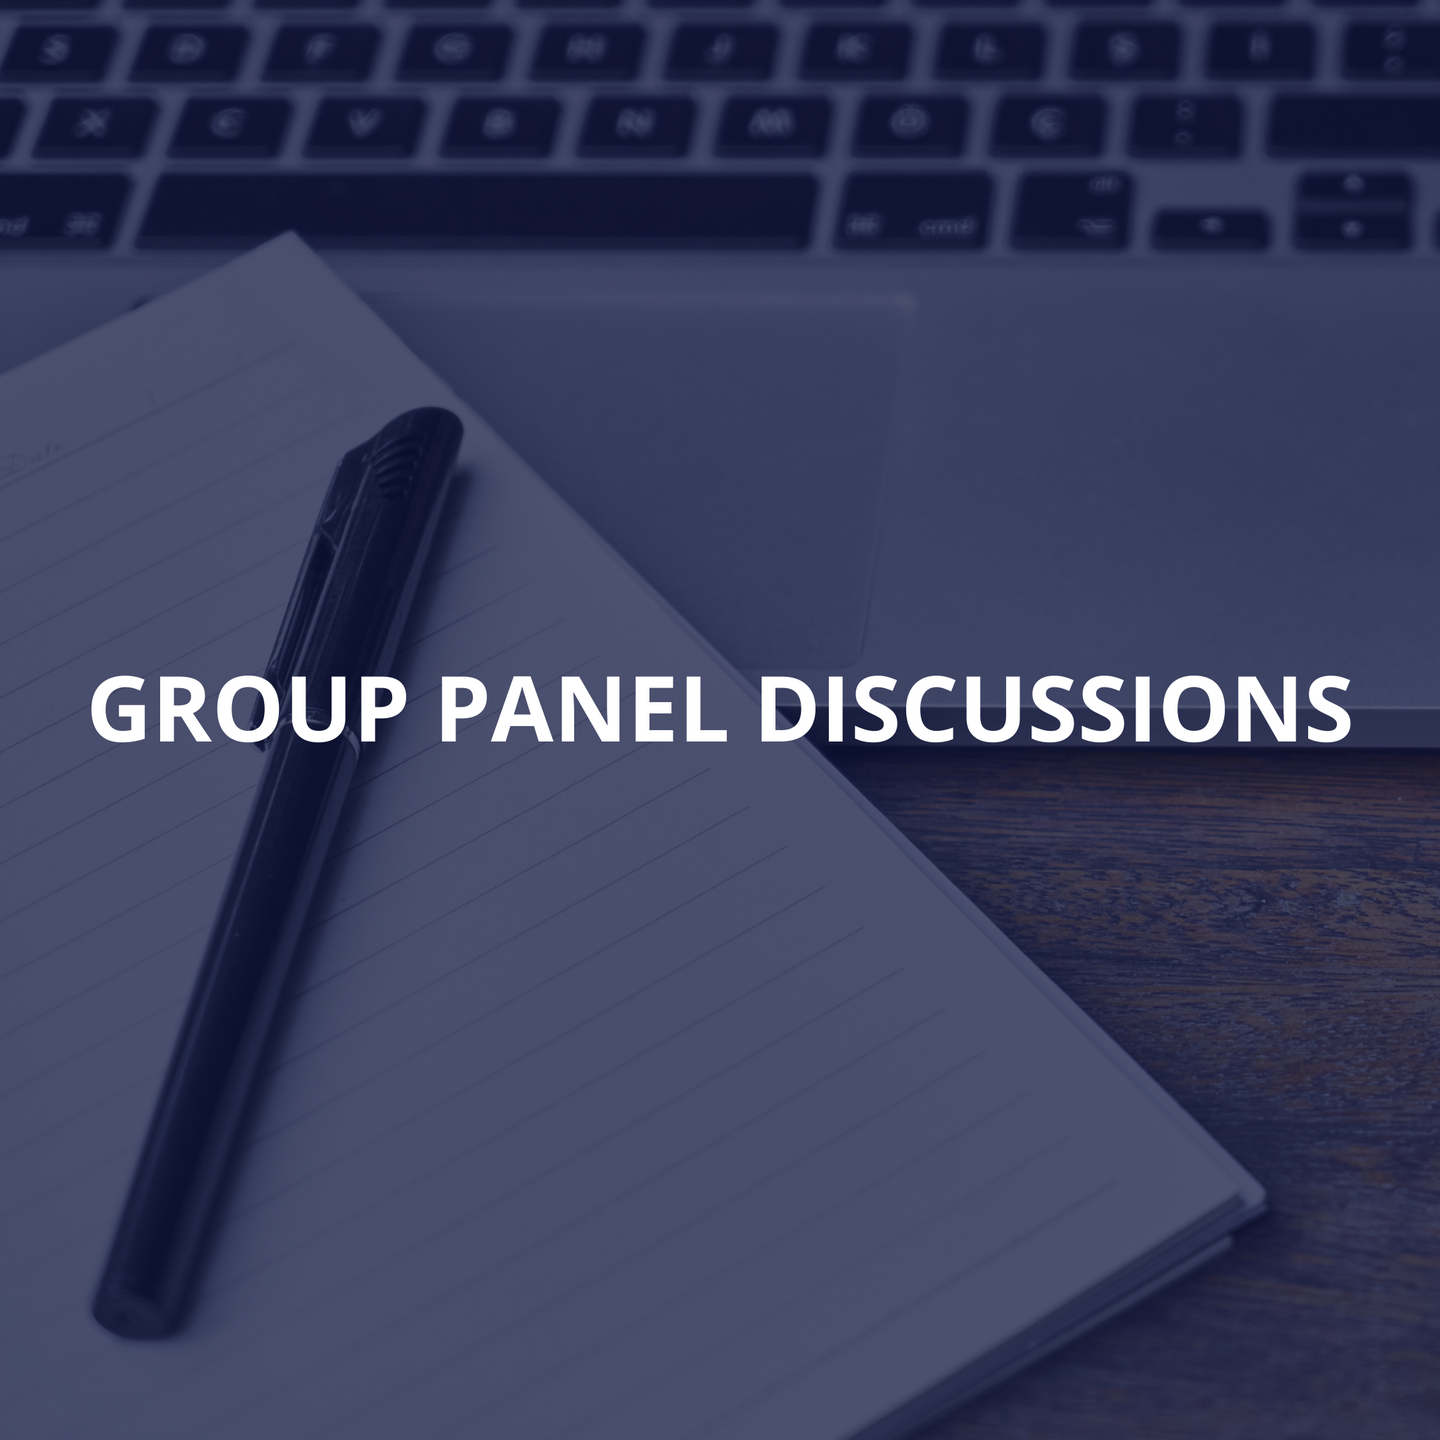 Group Panel Discussions